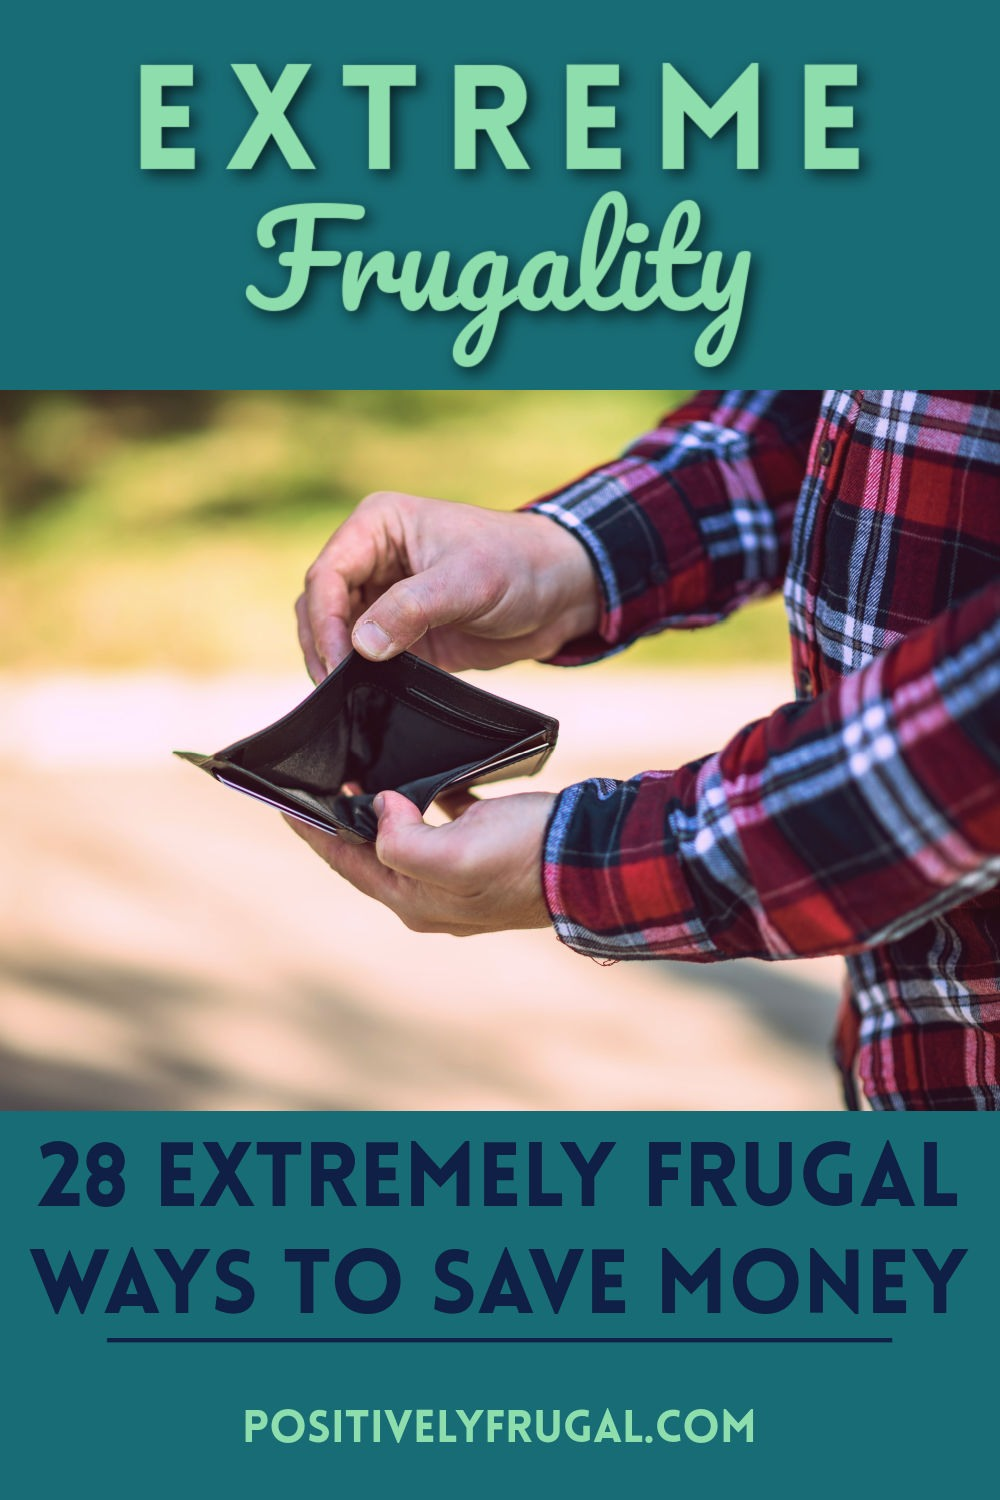 Extreme Frugality by PositivelyFrugal.com